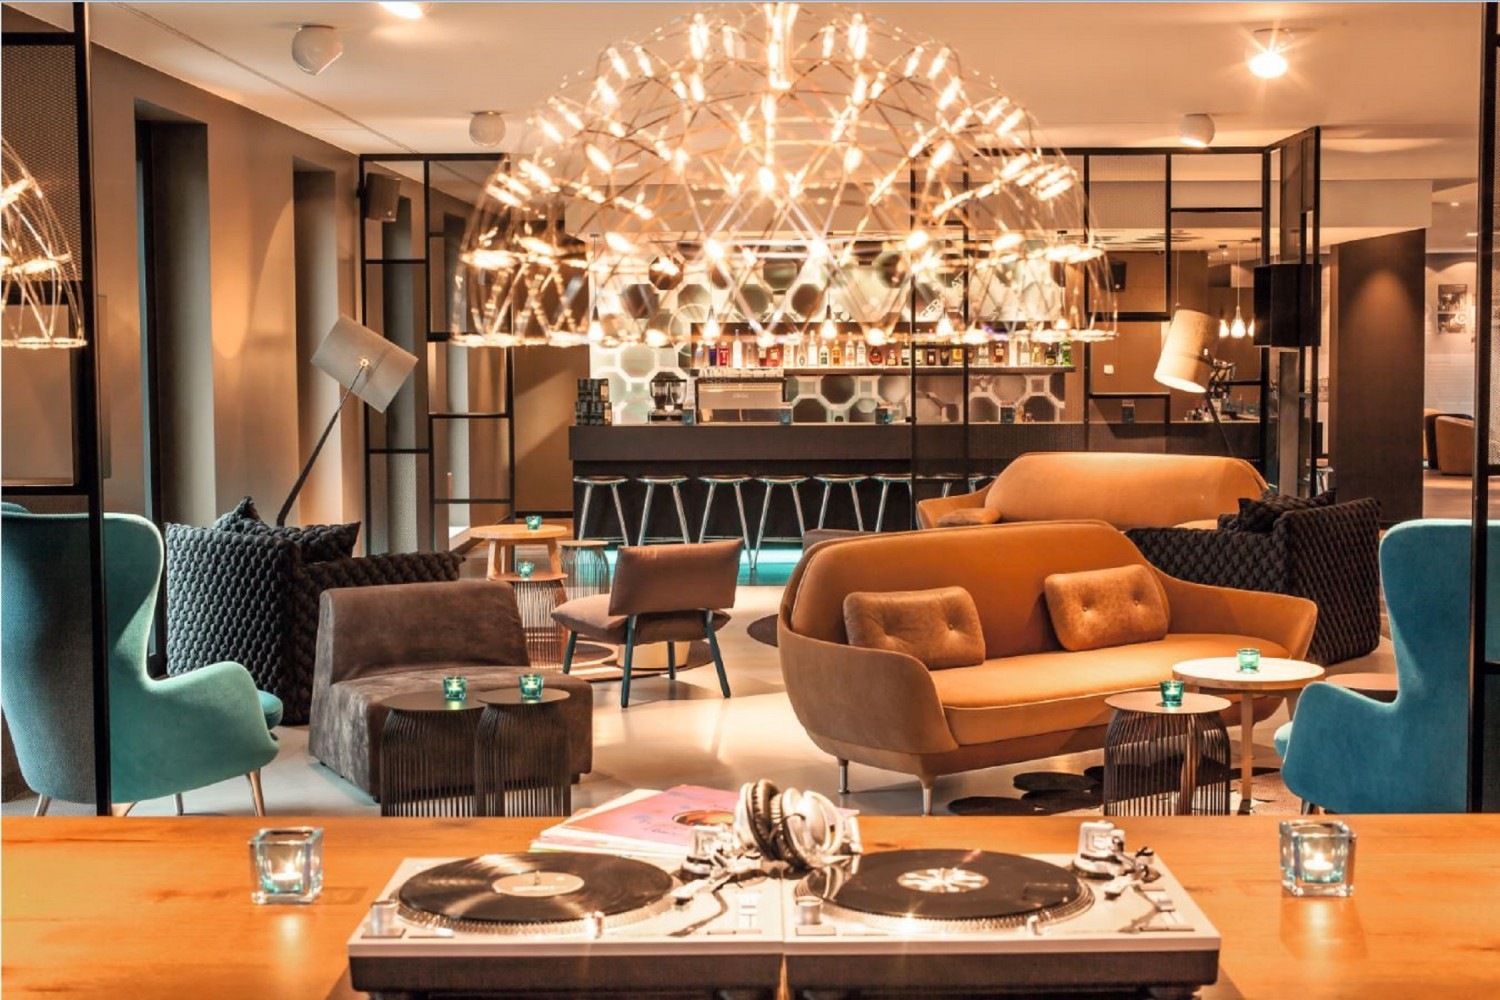 Motel One Lounge Sessel Kaufen Sessel Motel One Affordable Renovation Work Has Begun On